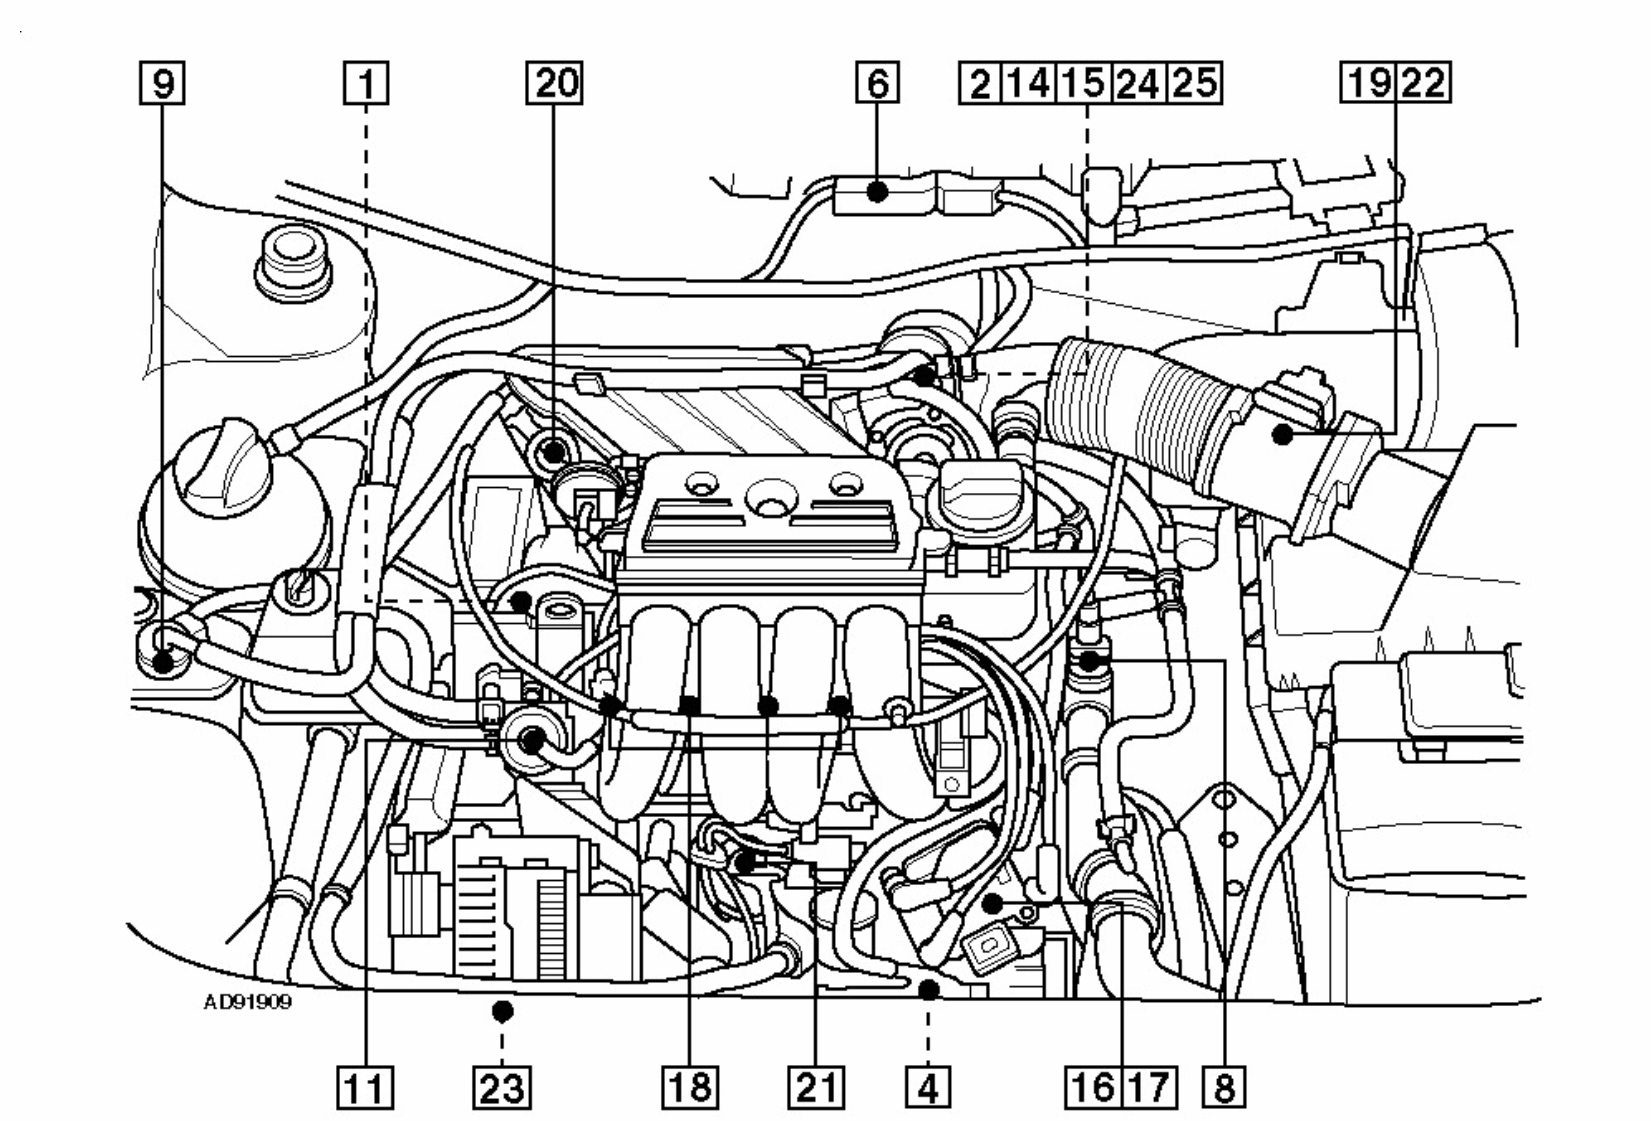 vw gti engine diagram download wiring diagrams u2022 rh sleeperfurniture co